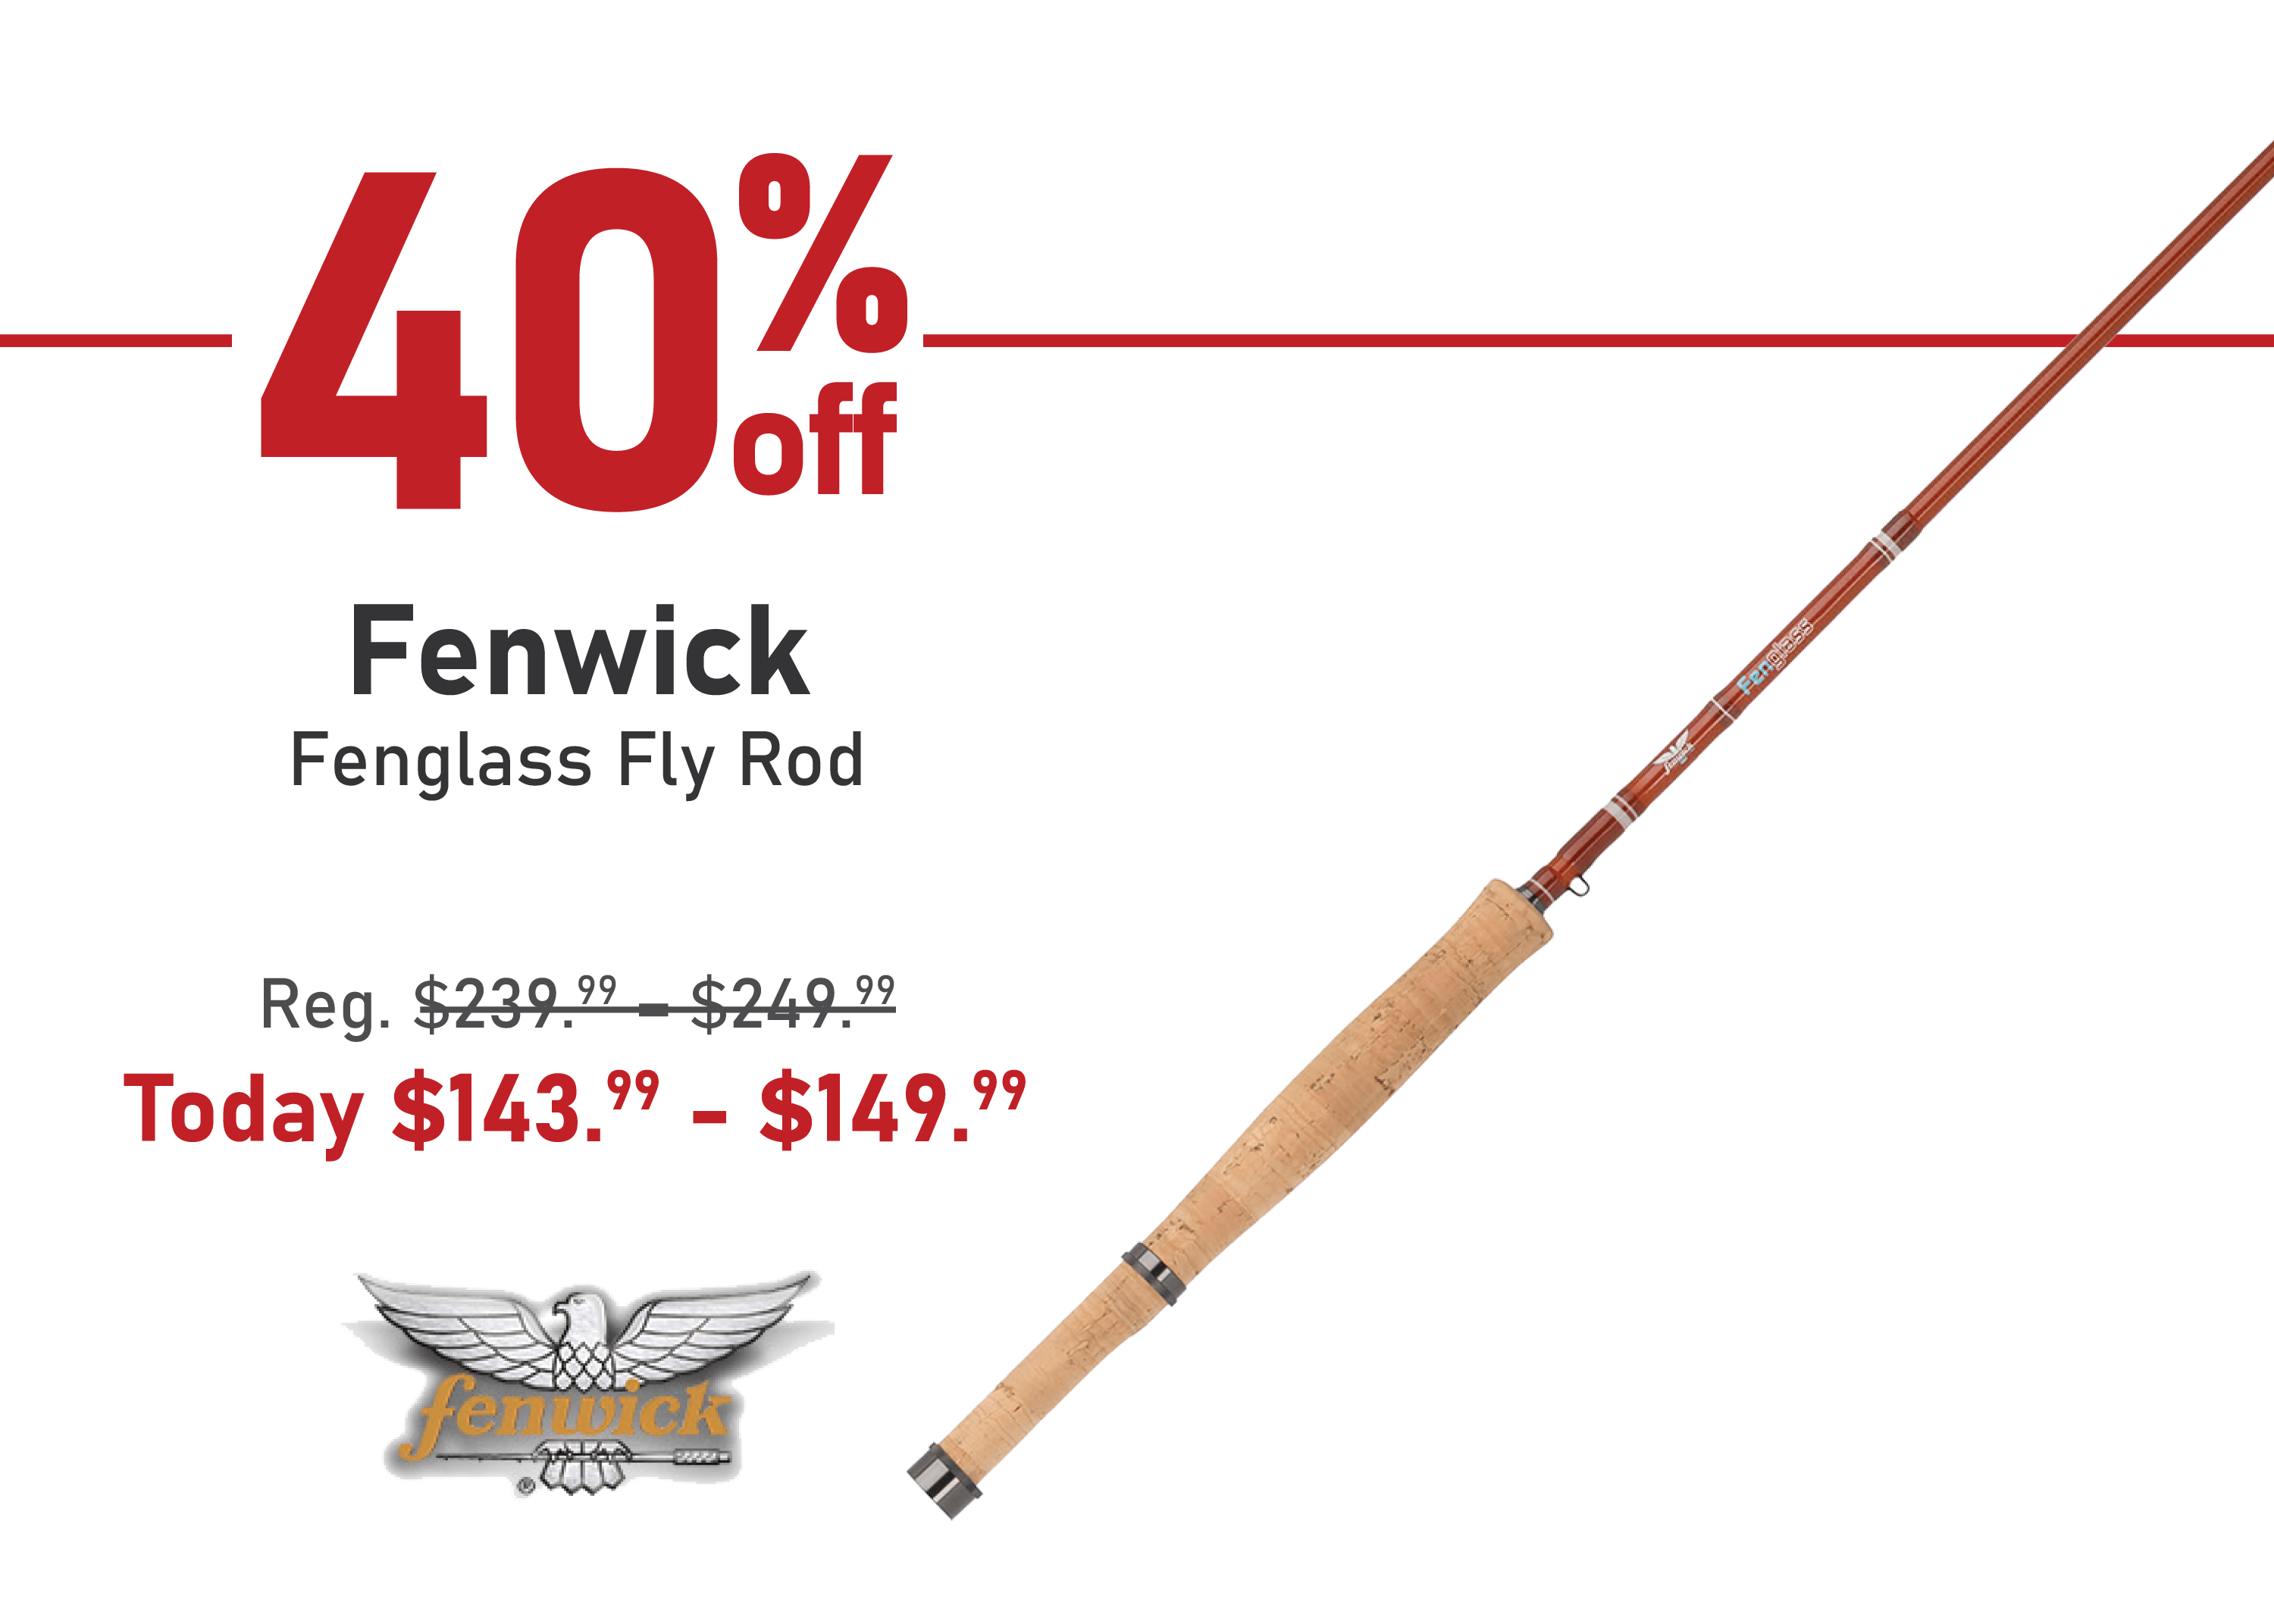 Save 40% on the Fenwick Fenglass Fly Rod